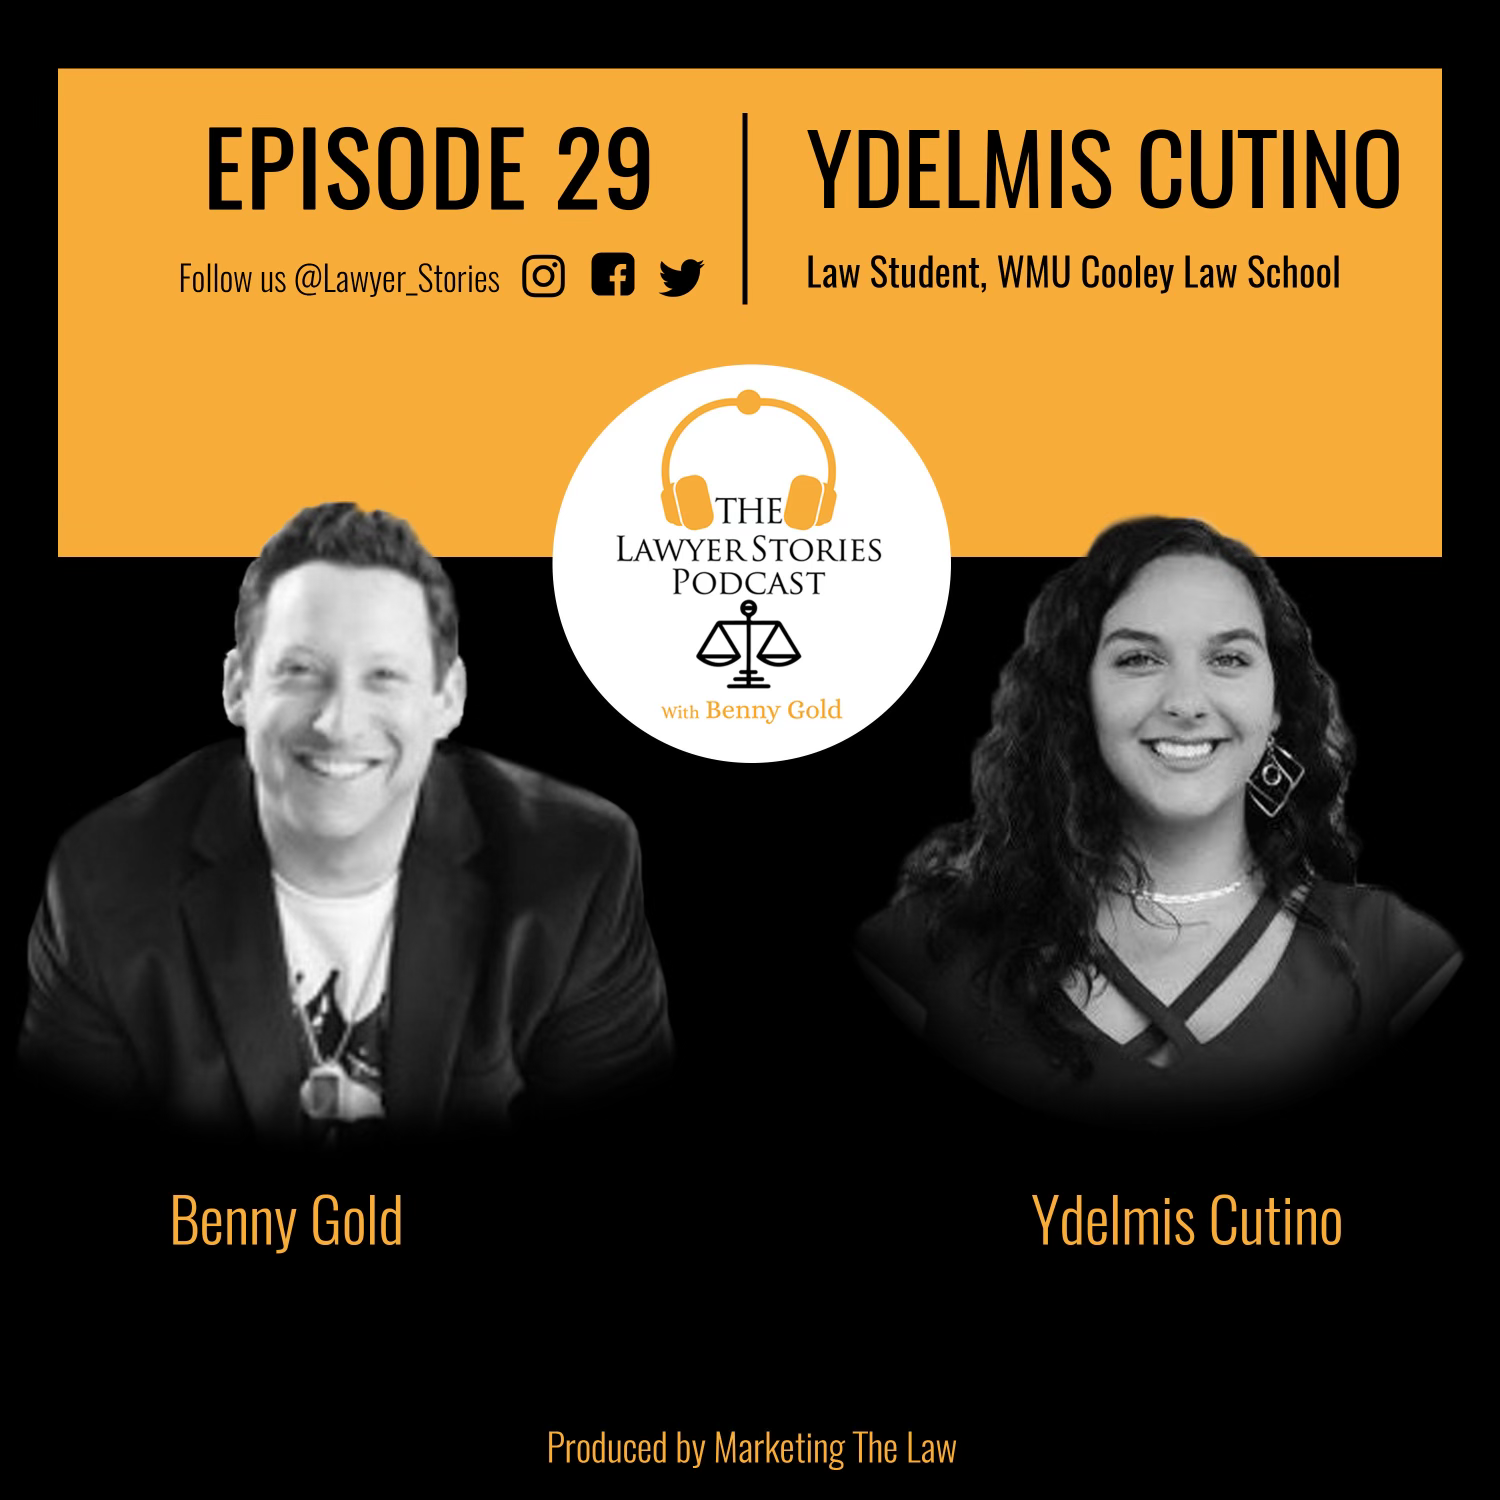 The Lawyer Stories Podcast Episode 29 featuring Ydelmis Cutino